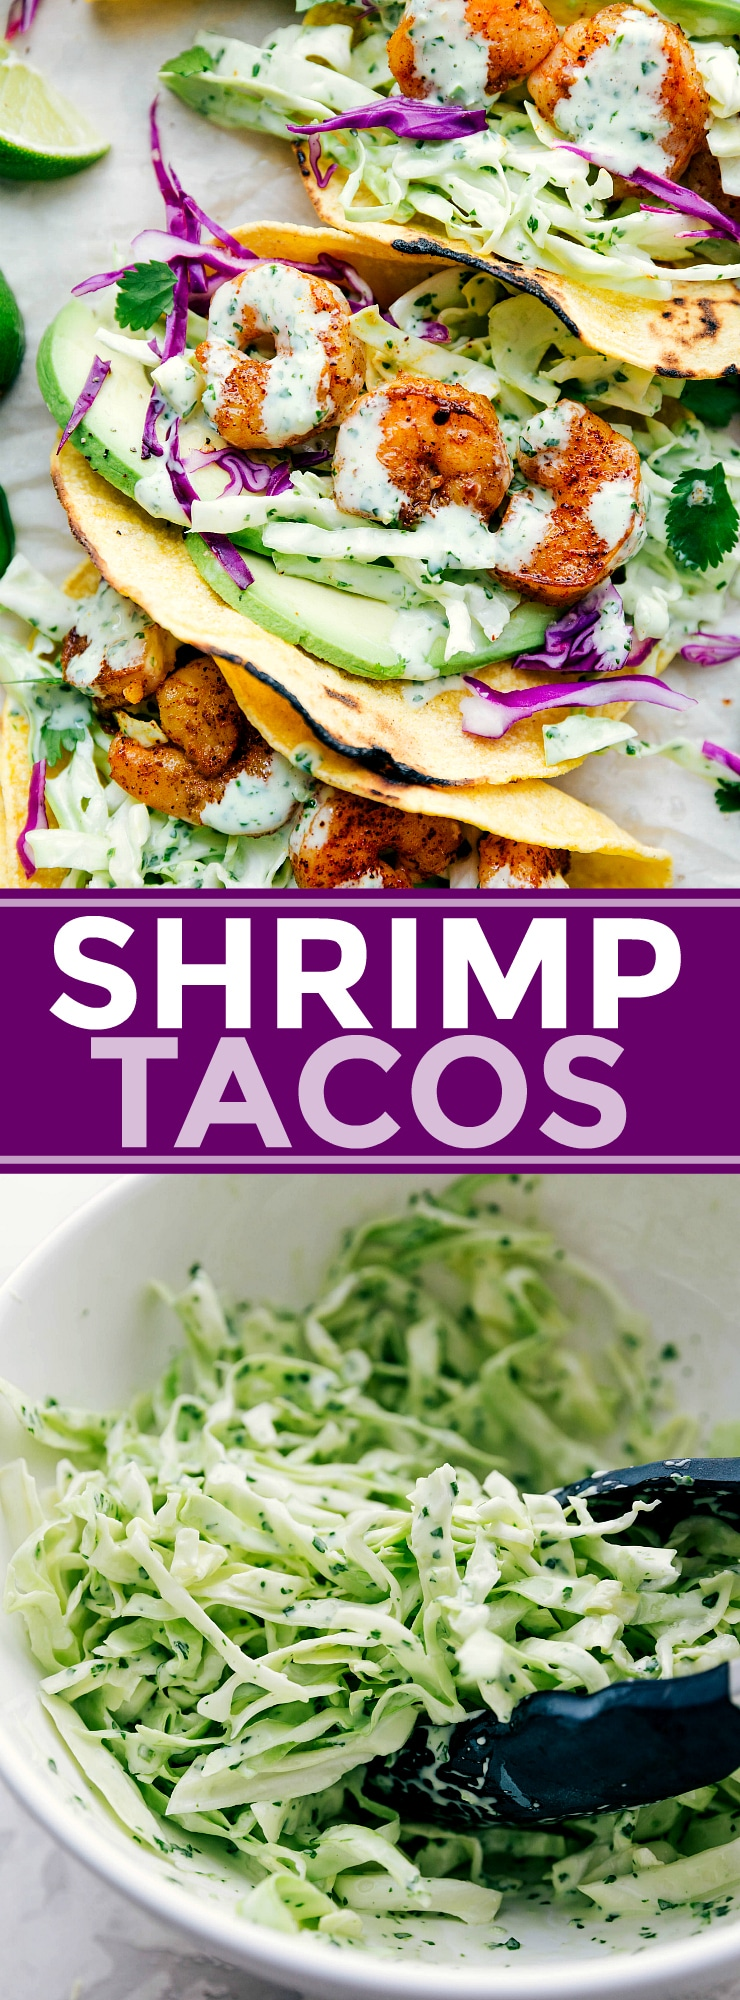 Perfectly seasoned shrimp with cilantro-lime slaw and fresh avocado all packed in a tortilla. These shrimp tacos can be ready in 30 minutes or less! (Plus, prep ahead tips!) via chelseasmessyapron.com #shrimp #taco #easy #quick #healthy #fast #recipe #meal #cilantro #lime #avocado #guacamole #tacos